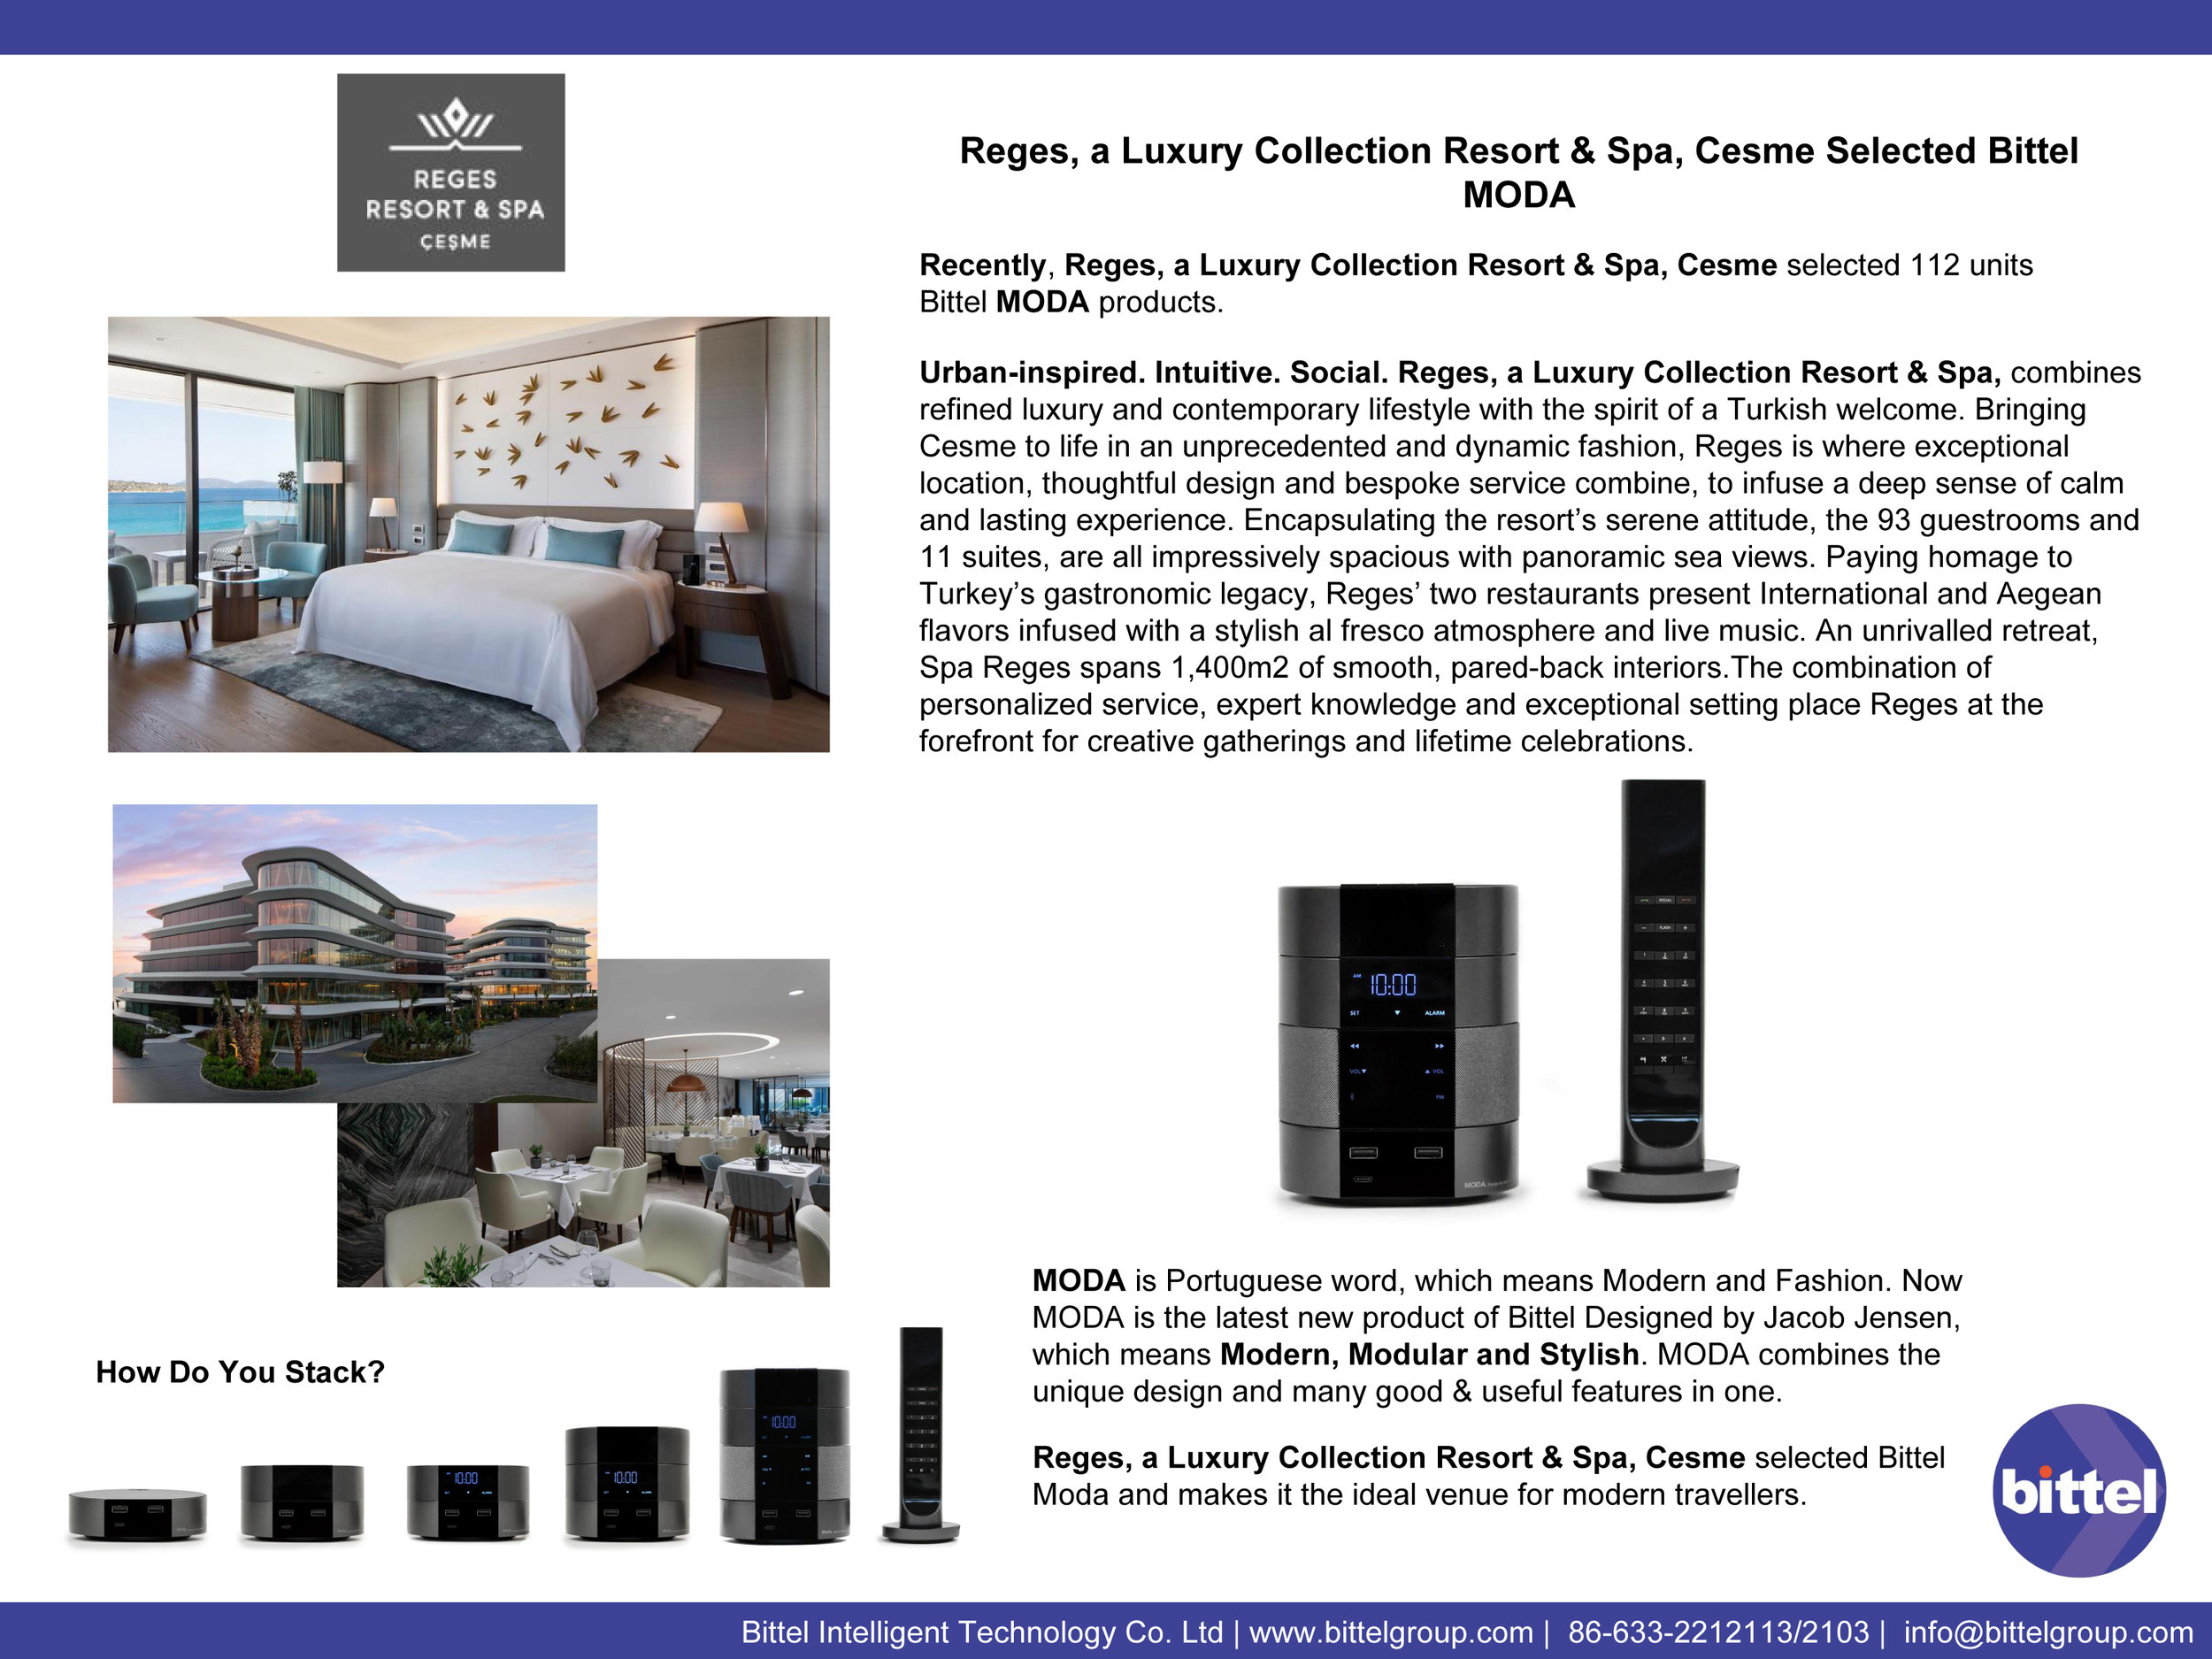 Reges, a Luxury Collection Resort & Spa, Cesme copy.jpg